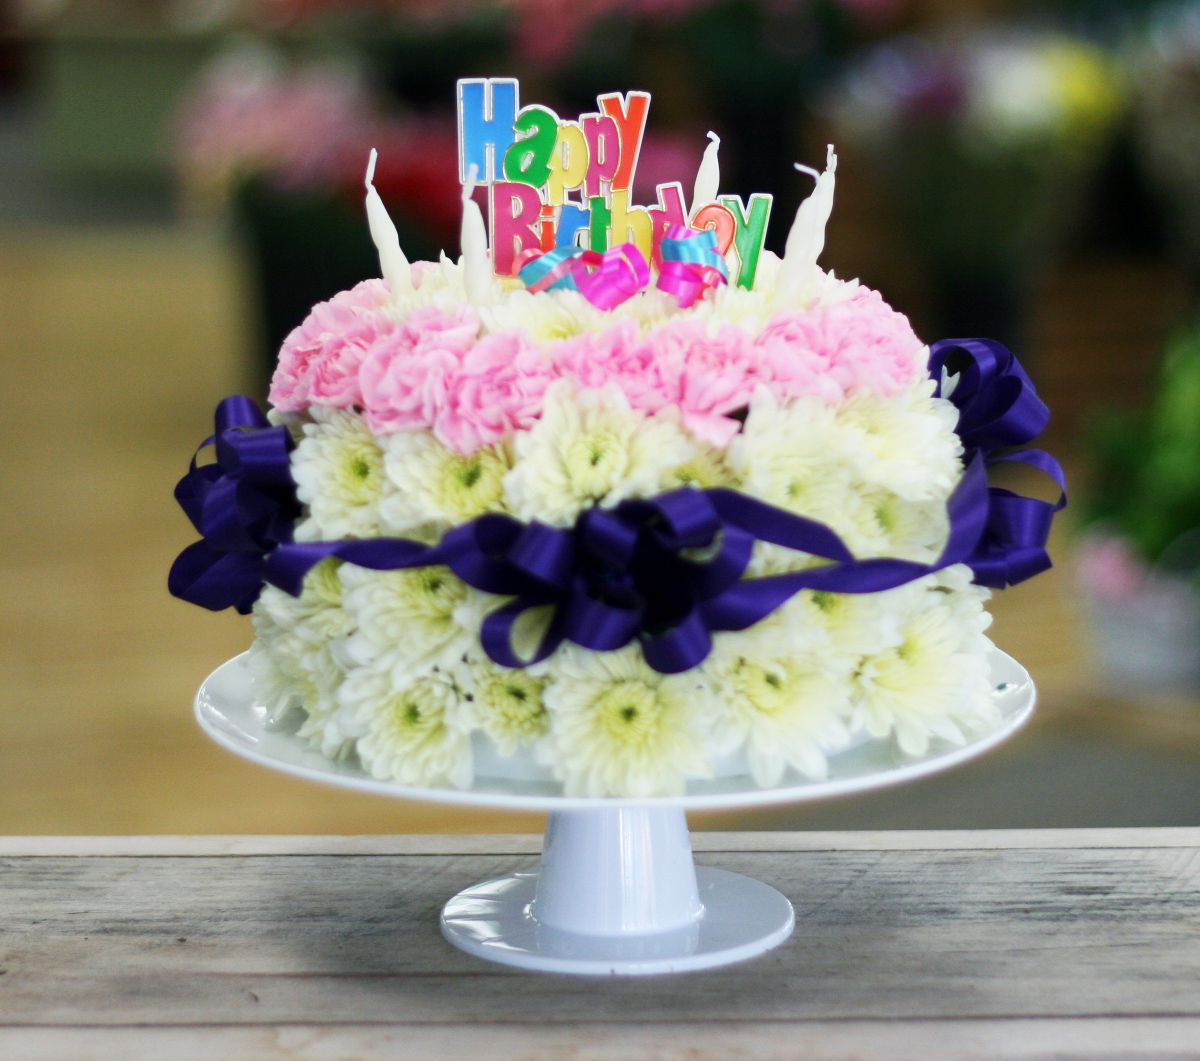 Online birthday cakes and flowers image collections flower flower birthday cakes flowers flower delivery fresh inducedfo online flower delivery send flowers amp cakes with izmirmasajfo